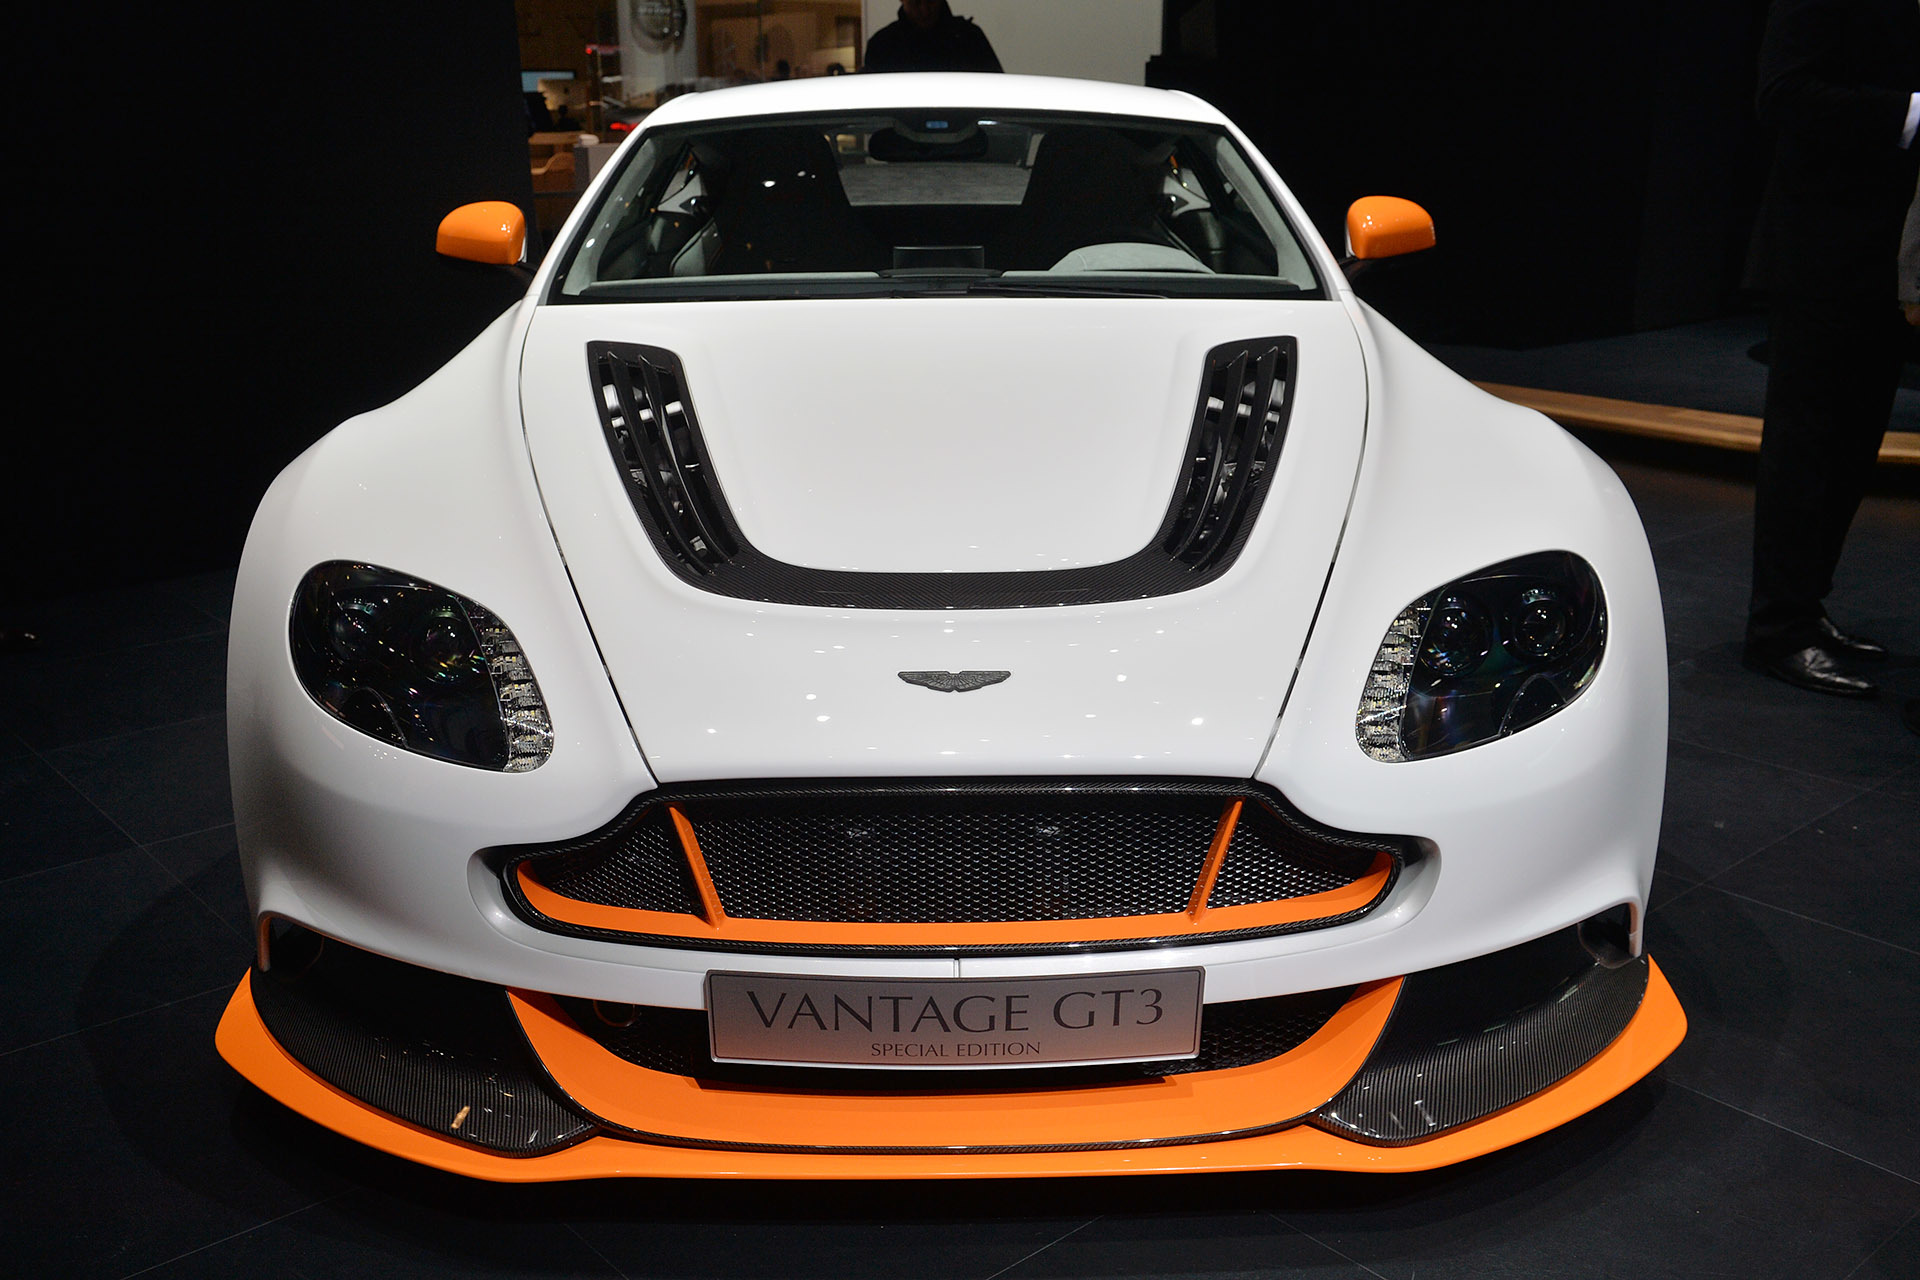 aston martin vantage gt3 special edition: geneva 2015 photo